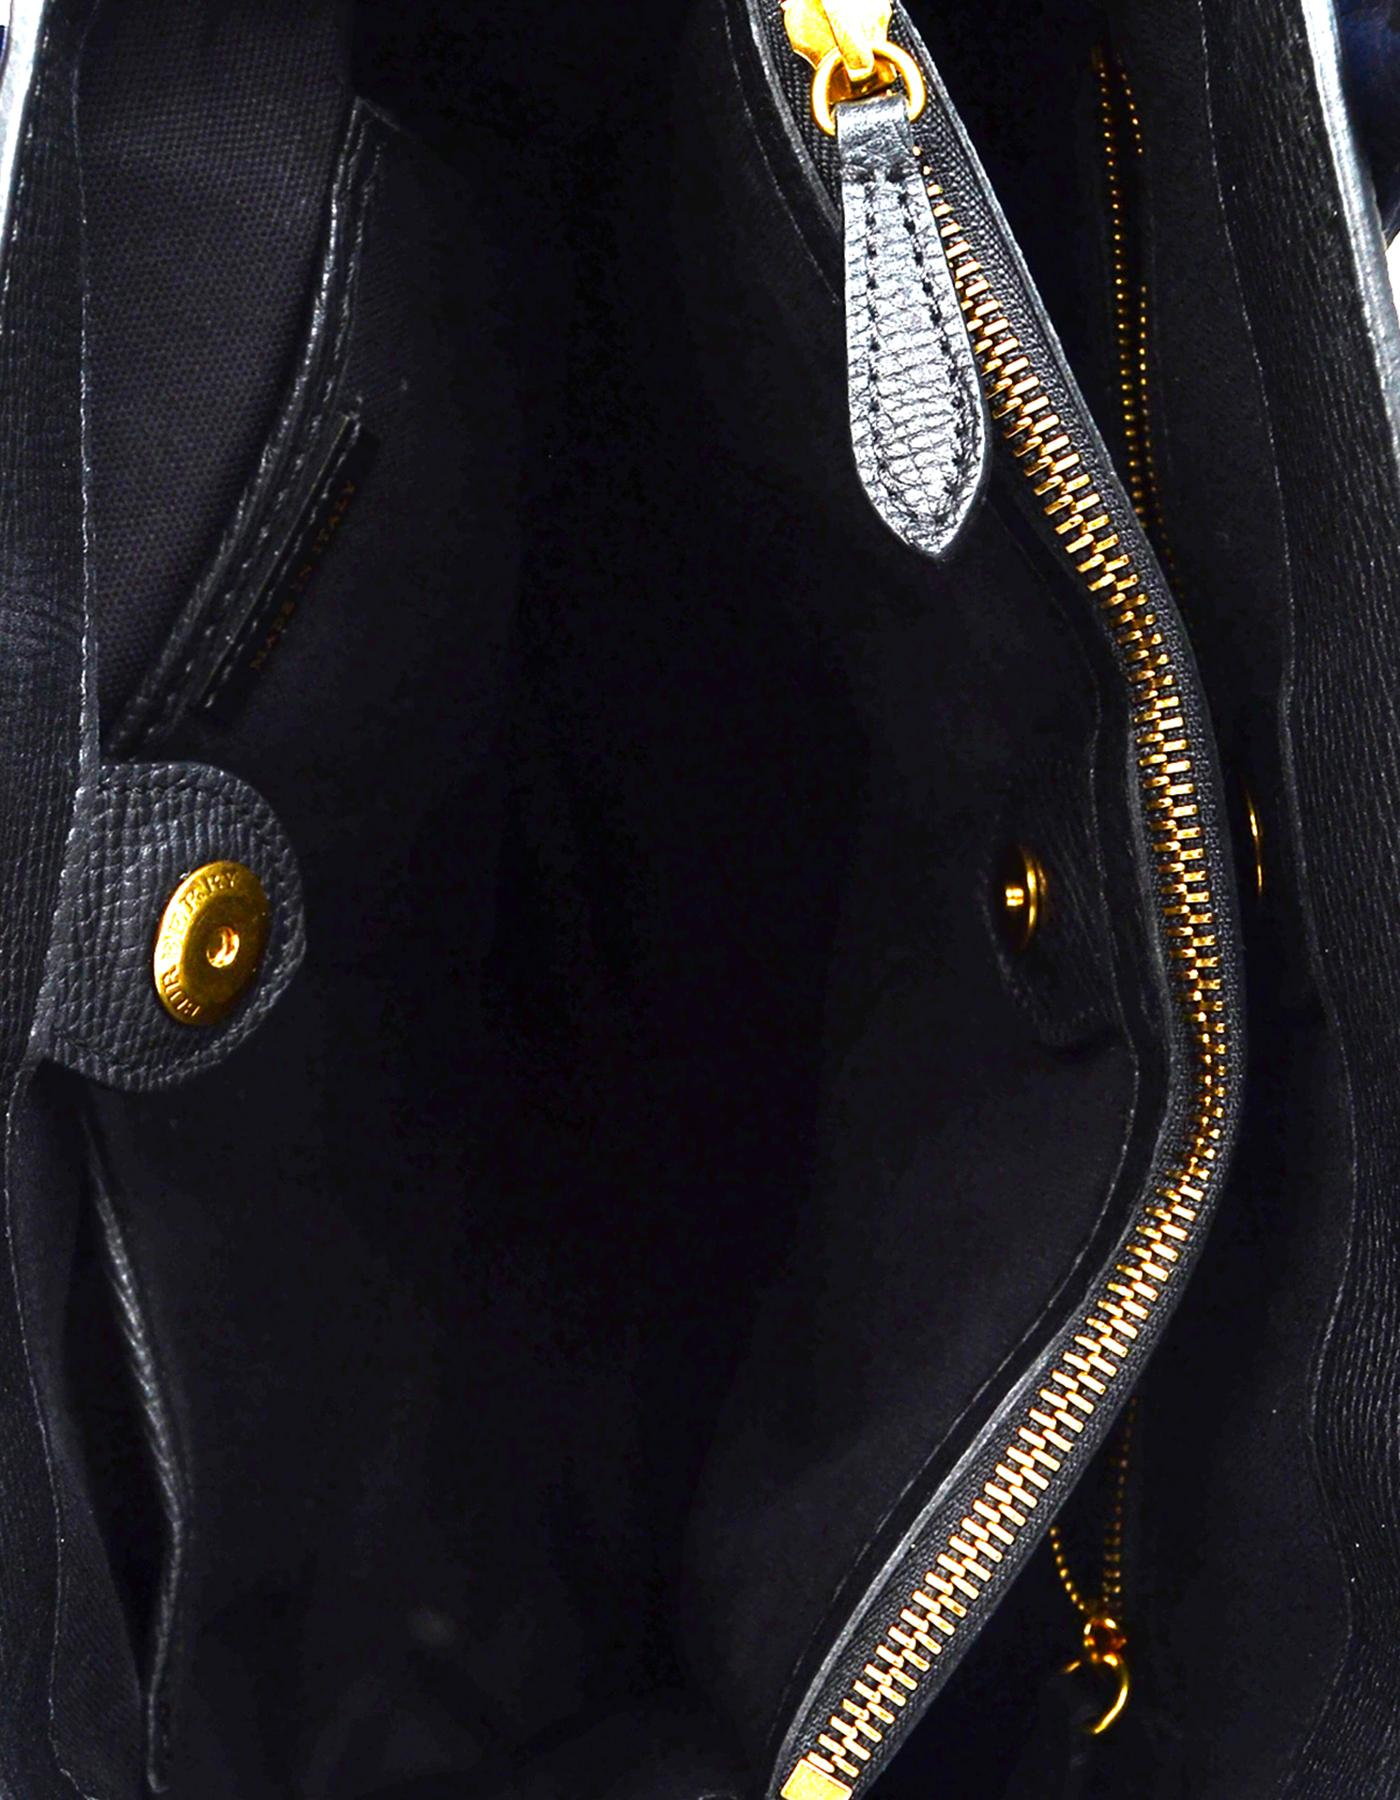 c9b0a92914ff Burberry  18 Black Blue Grained Calfskin Leather Graffiti Medium Banner  Tote Bag For Sale at 1stdibs